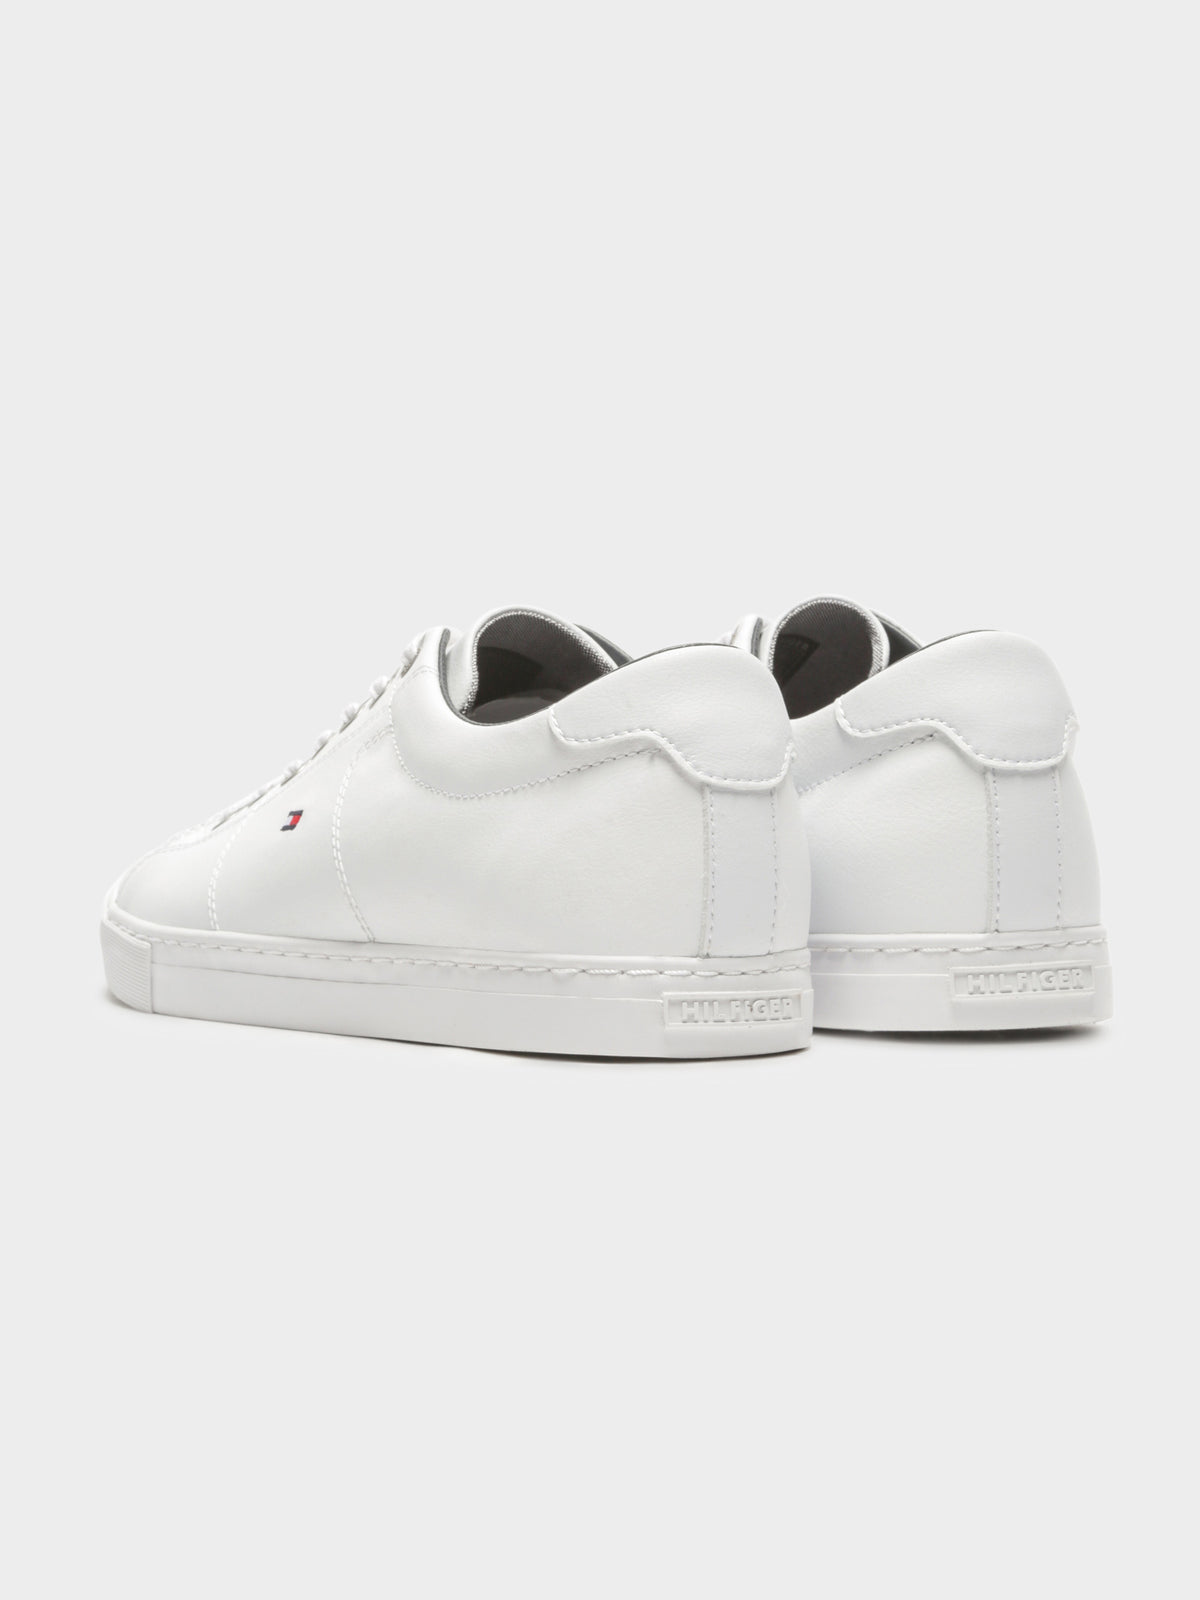 Mens Essential Sneaker in White Leather